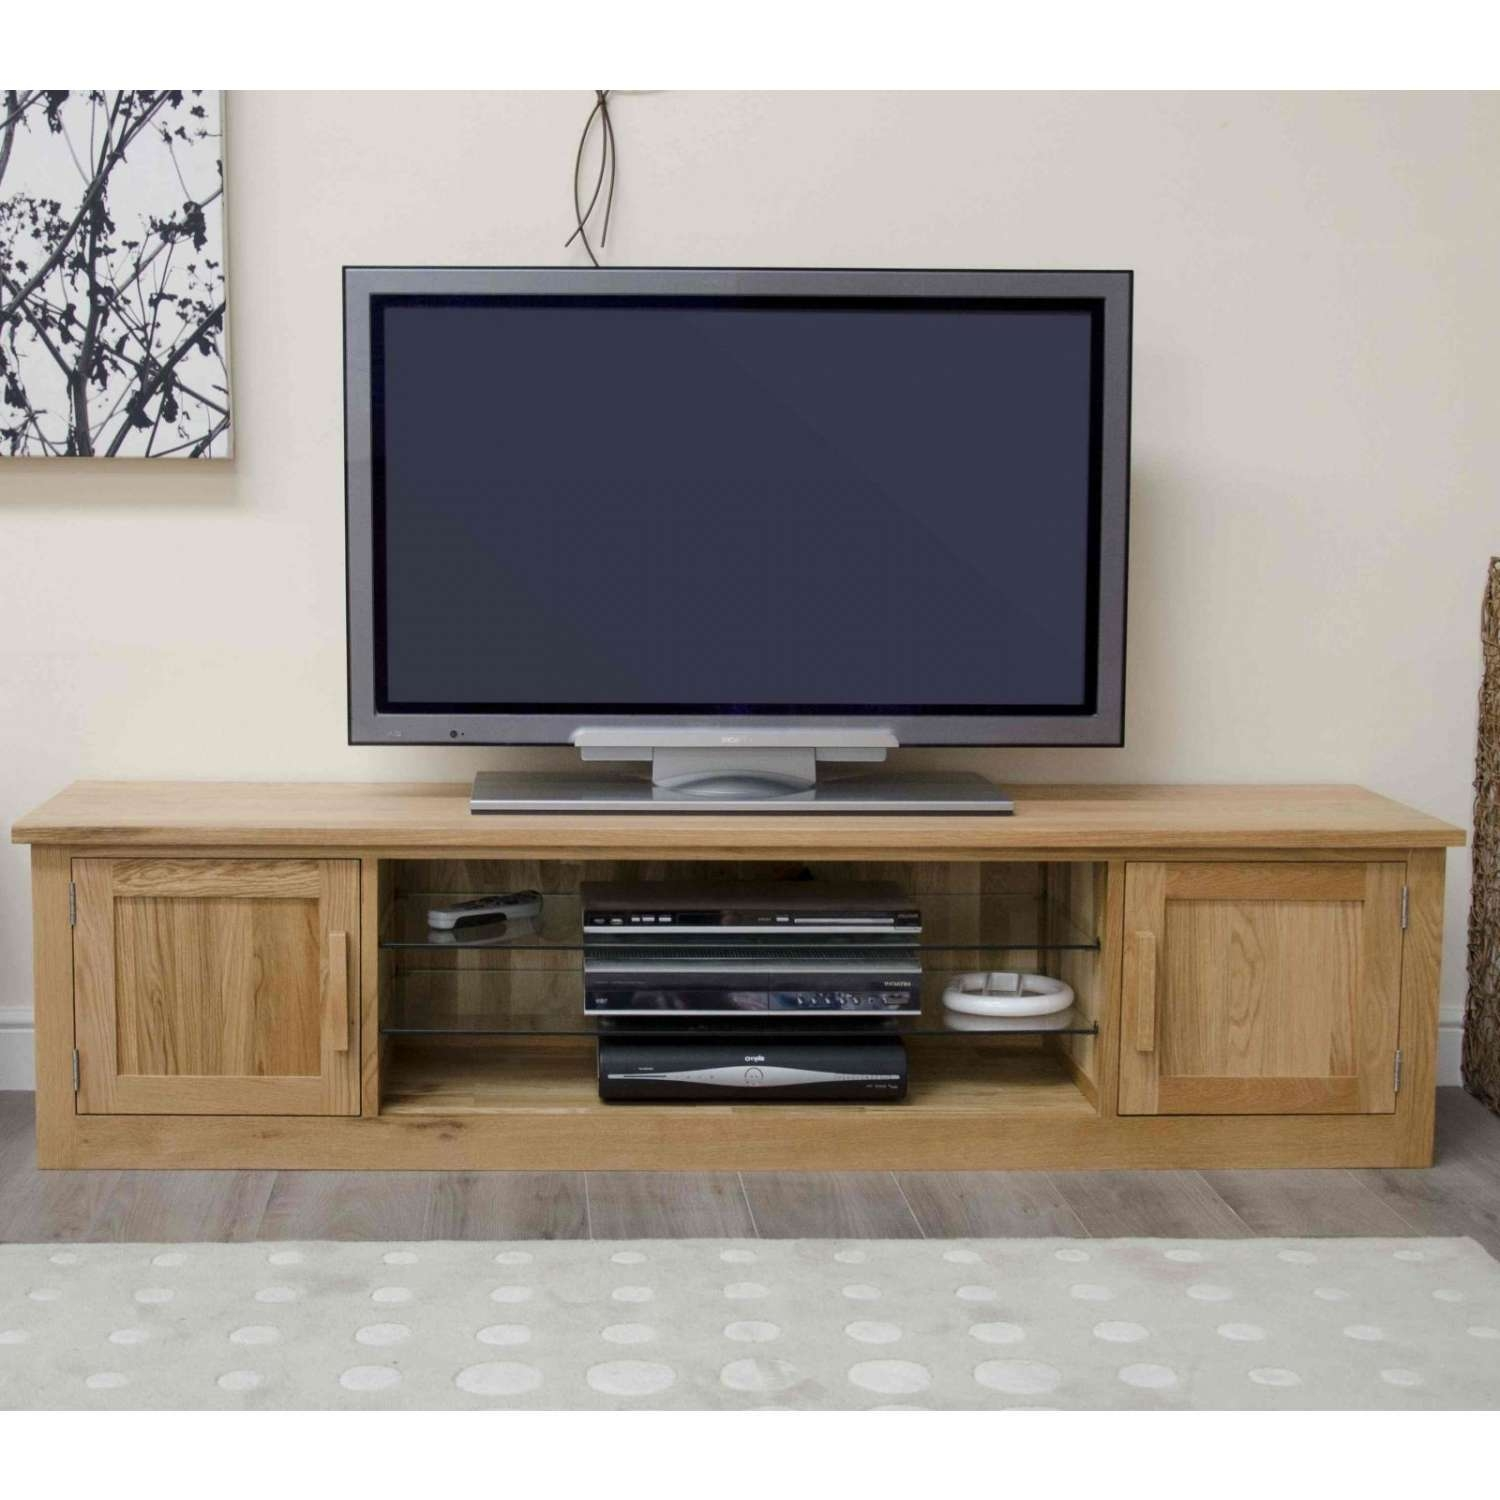 Arden Solid Oak Living Room Furniture Large Widescreen Tv Cabinet Regarding Large Tv Cabinets (View 2 of 20)